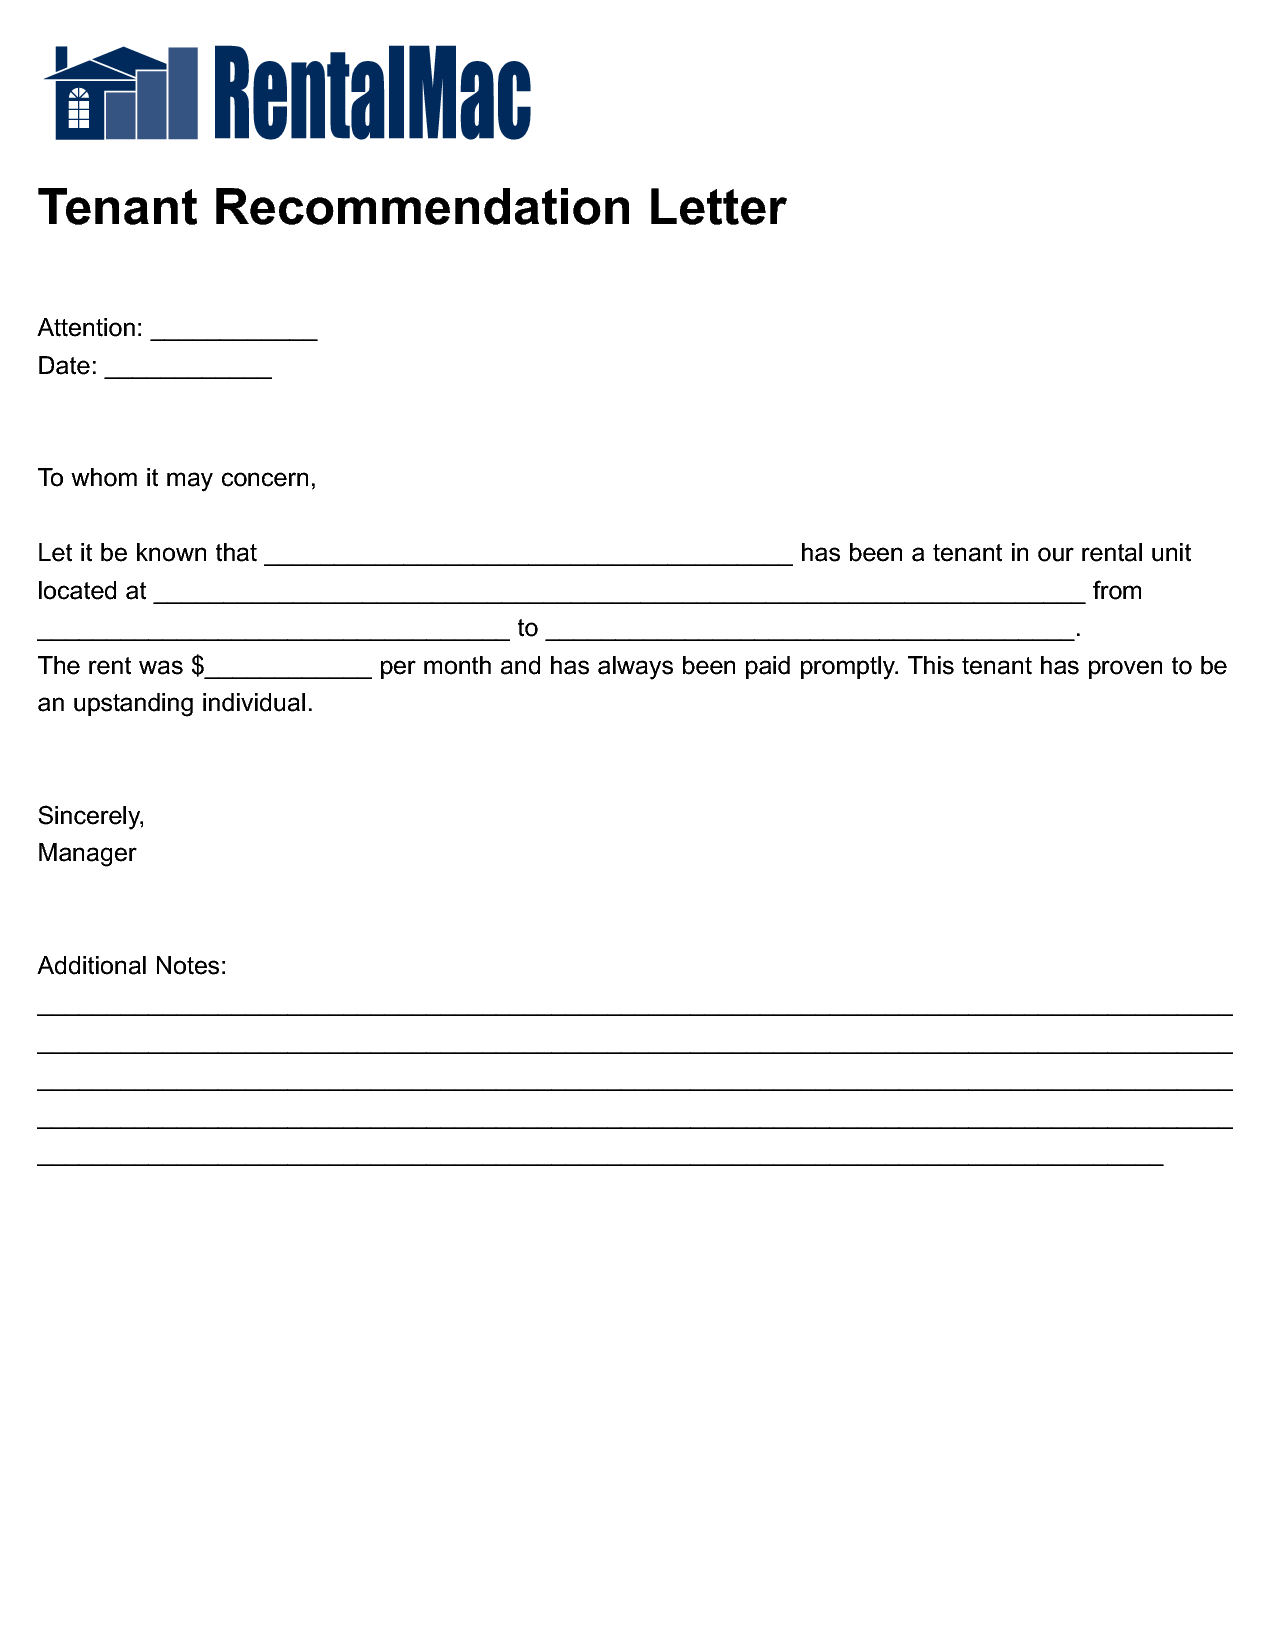 Tenant Reference Letter Template - Housing Reference Letter Image Collections Letter format formal Sample